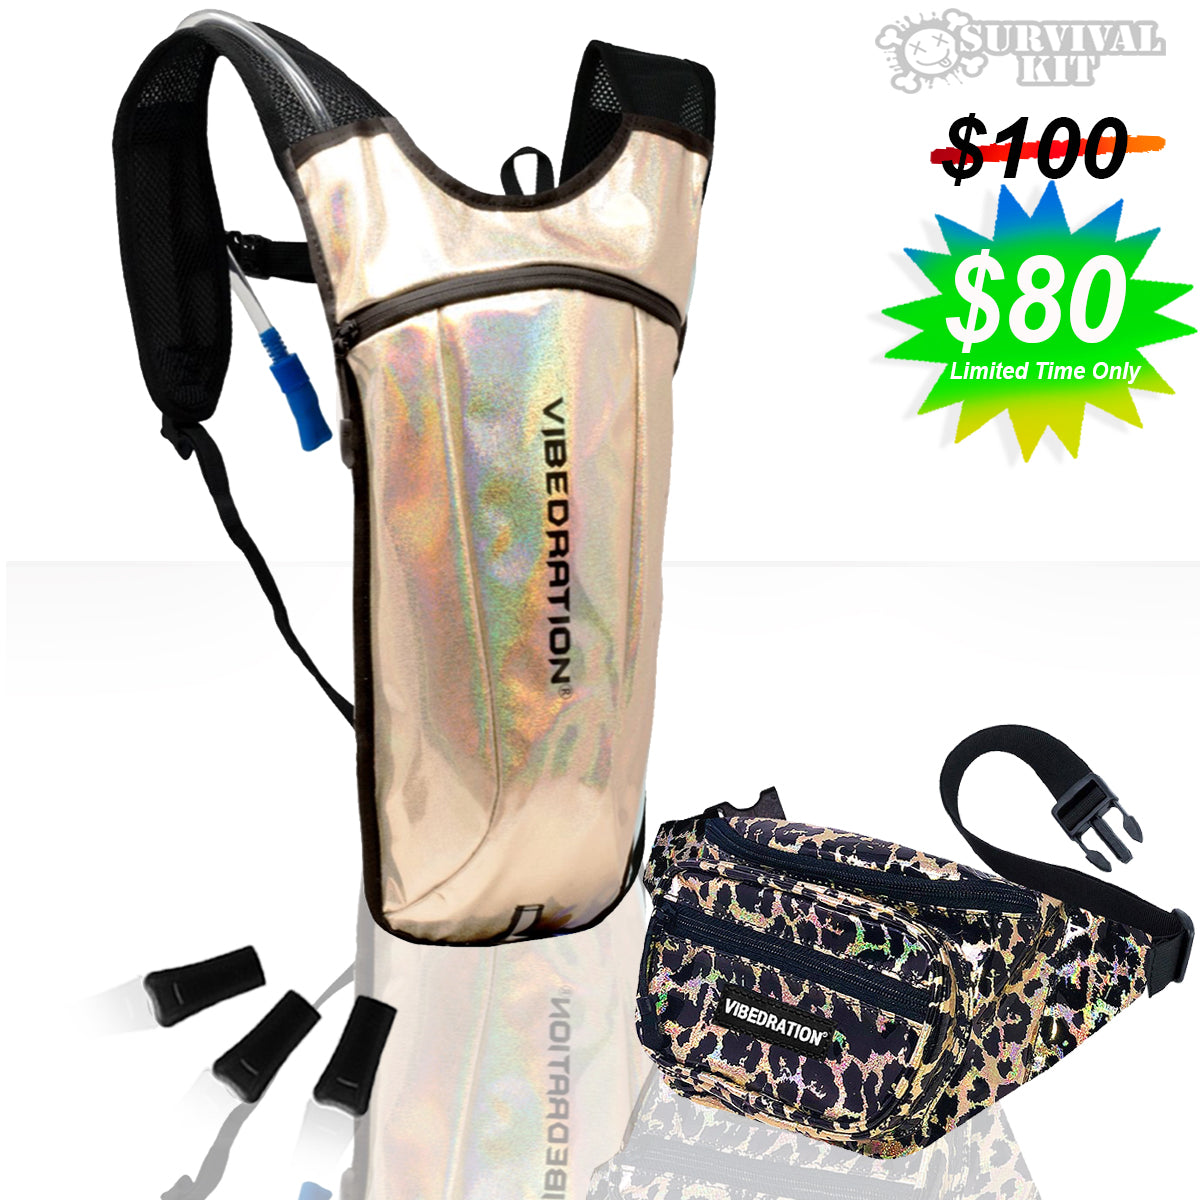 Gold hydration bag and leopard fanny pack combo set